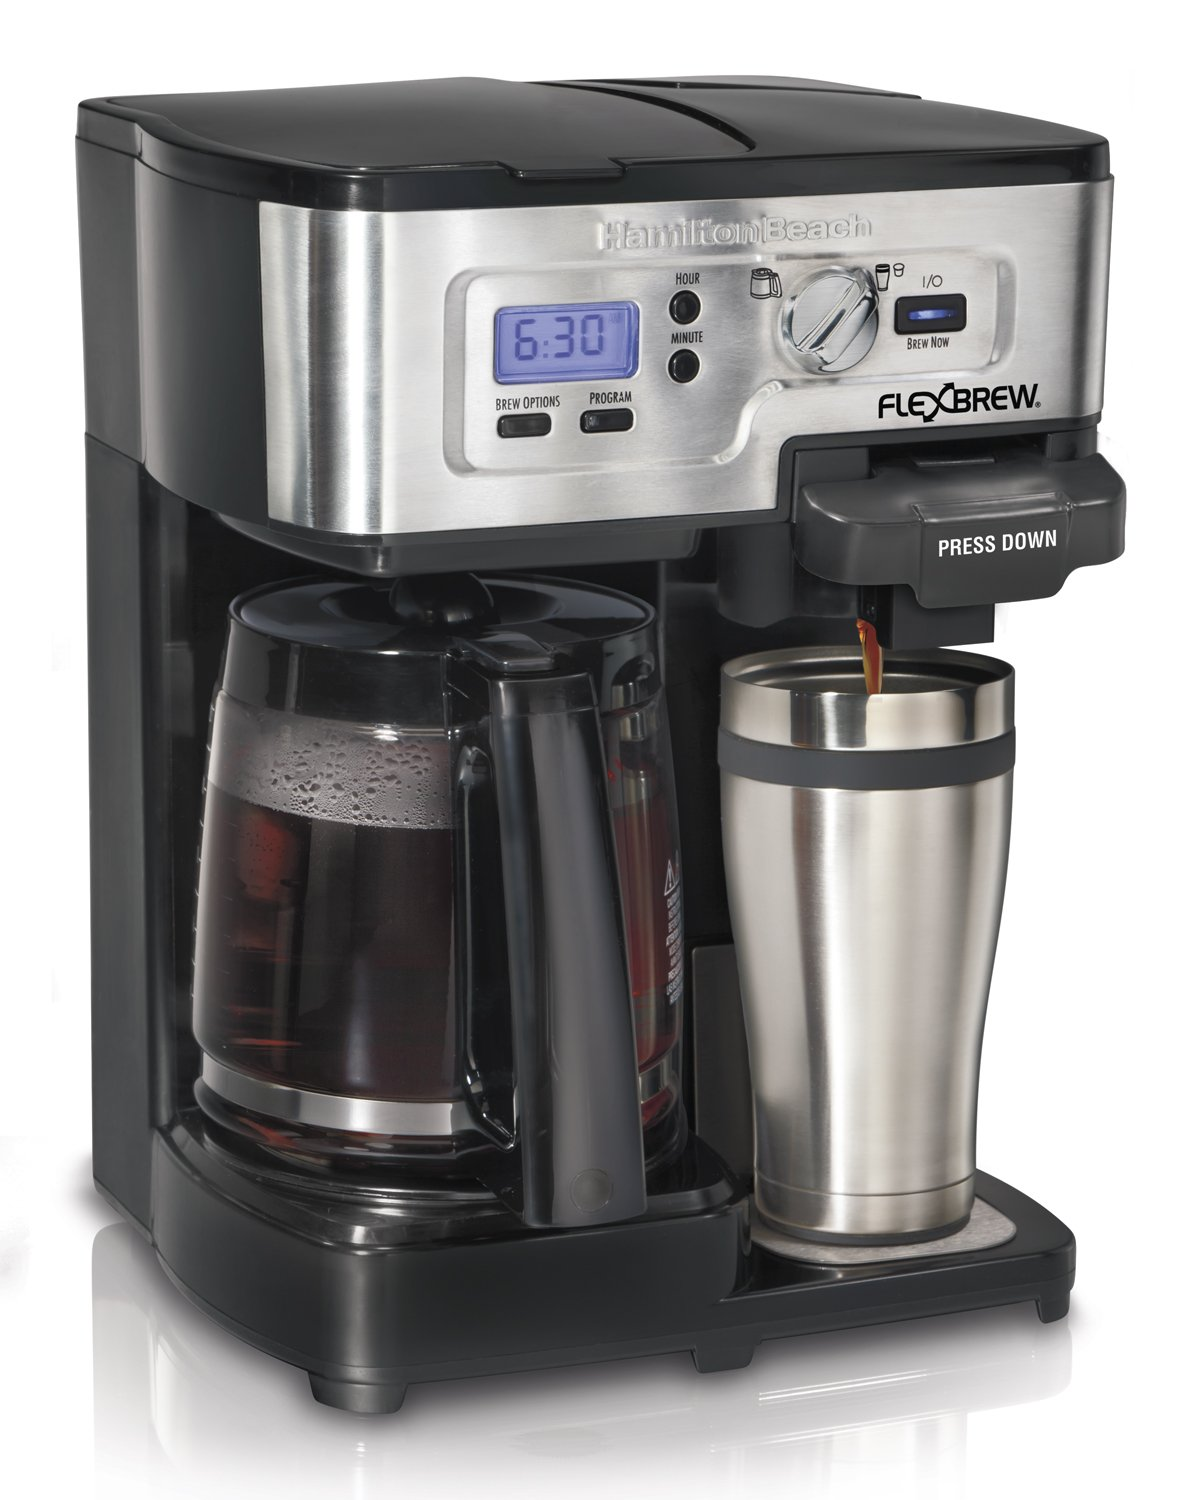 One Cup Coffee Maker K Cup : Hamilton Beach Single Serve Coffee Brewer and Full Pot Coffee Maker FlexBrew ... eBay